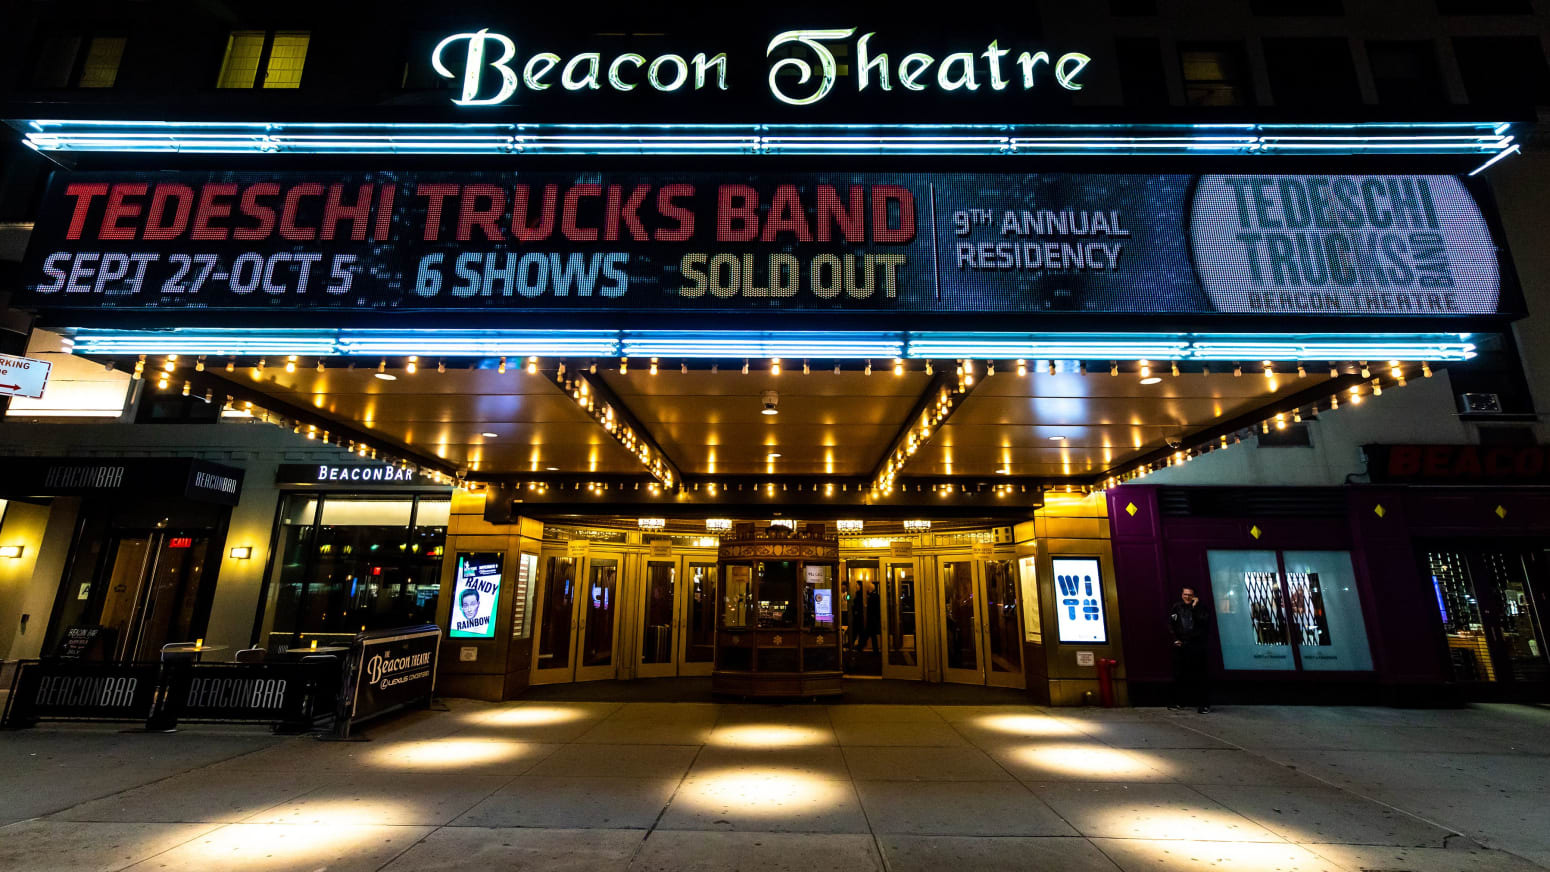 Tedeschi Trucks Band From The Beacon: The Fall Tradition Lives On: Livestream & Video On Demand